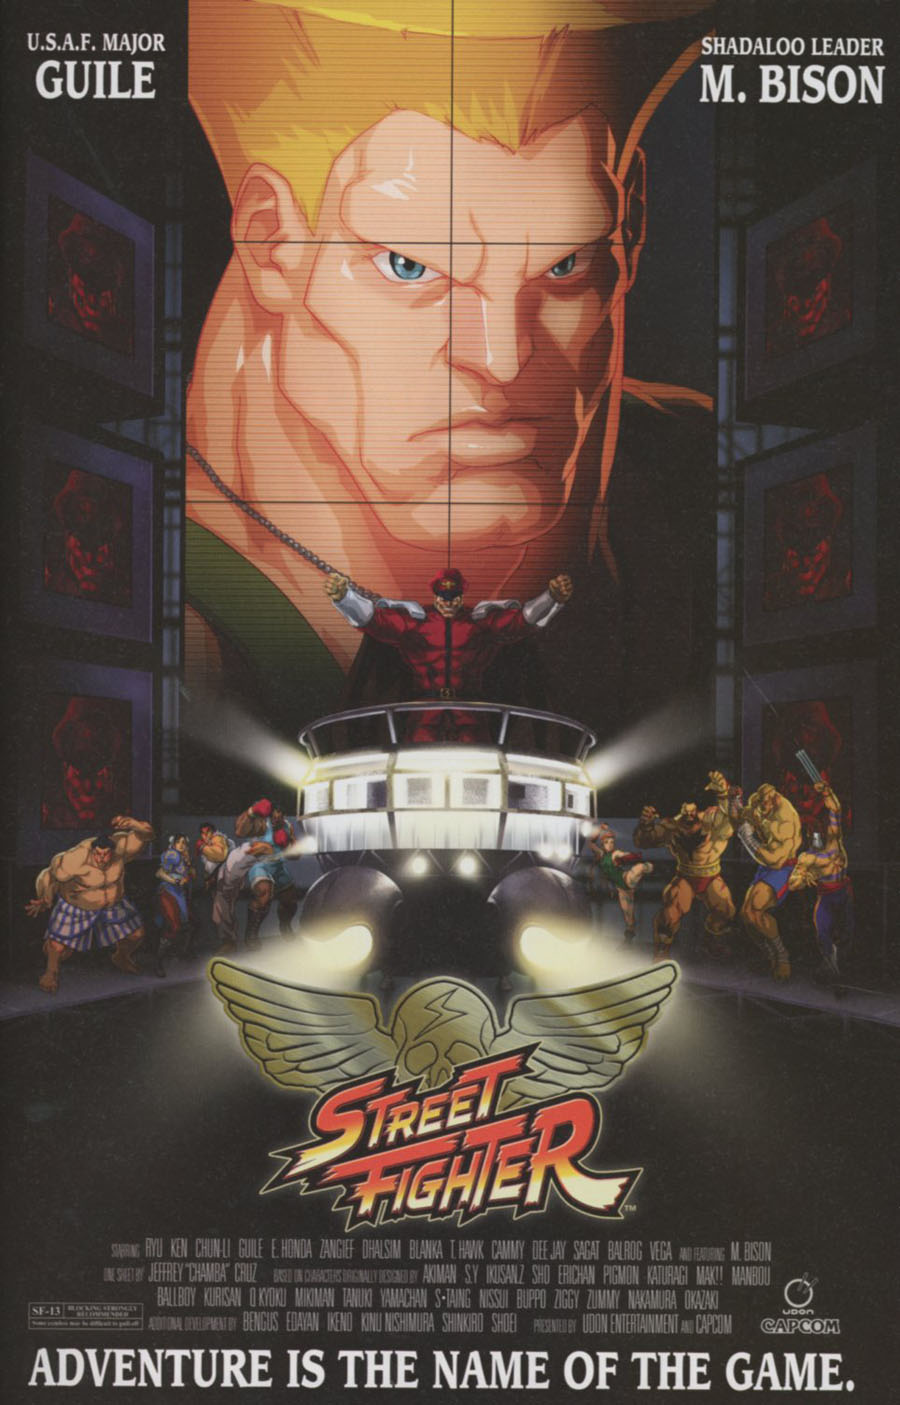 Street Fighter Unlimited #7 Cover C Variant Jeffrey Chamba Cruz Movie Poster Cover